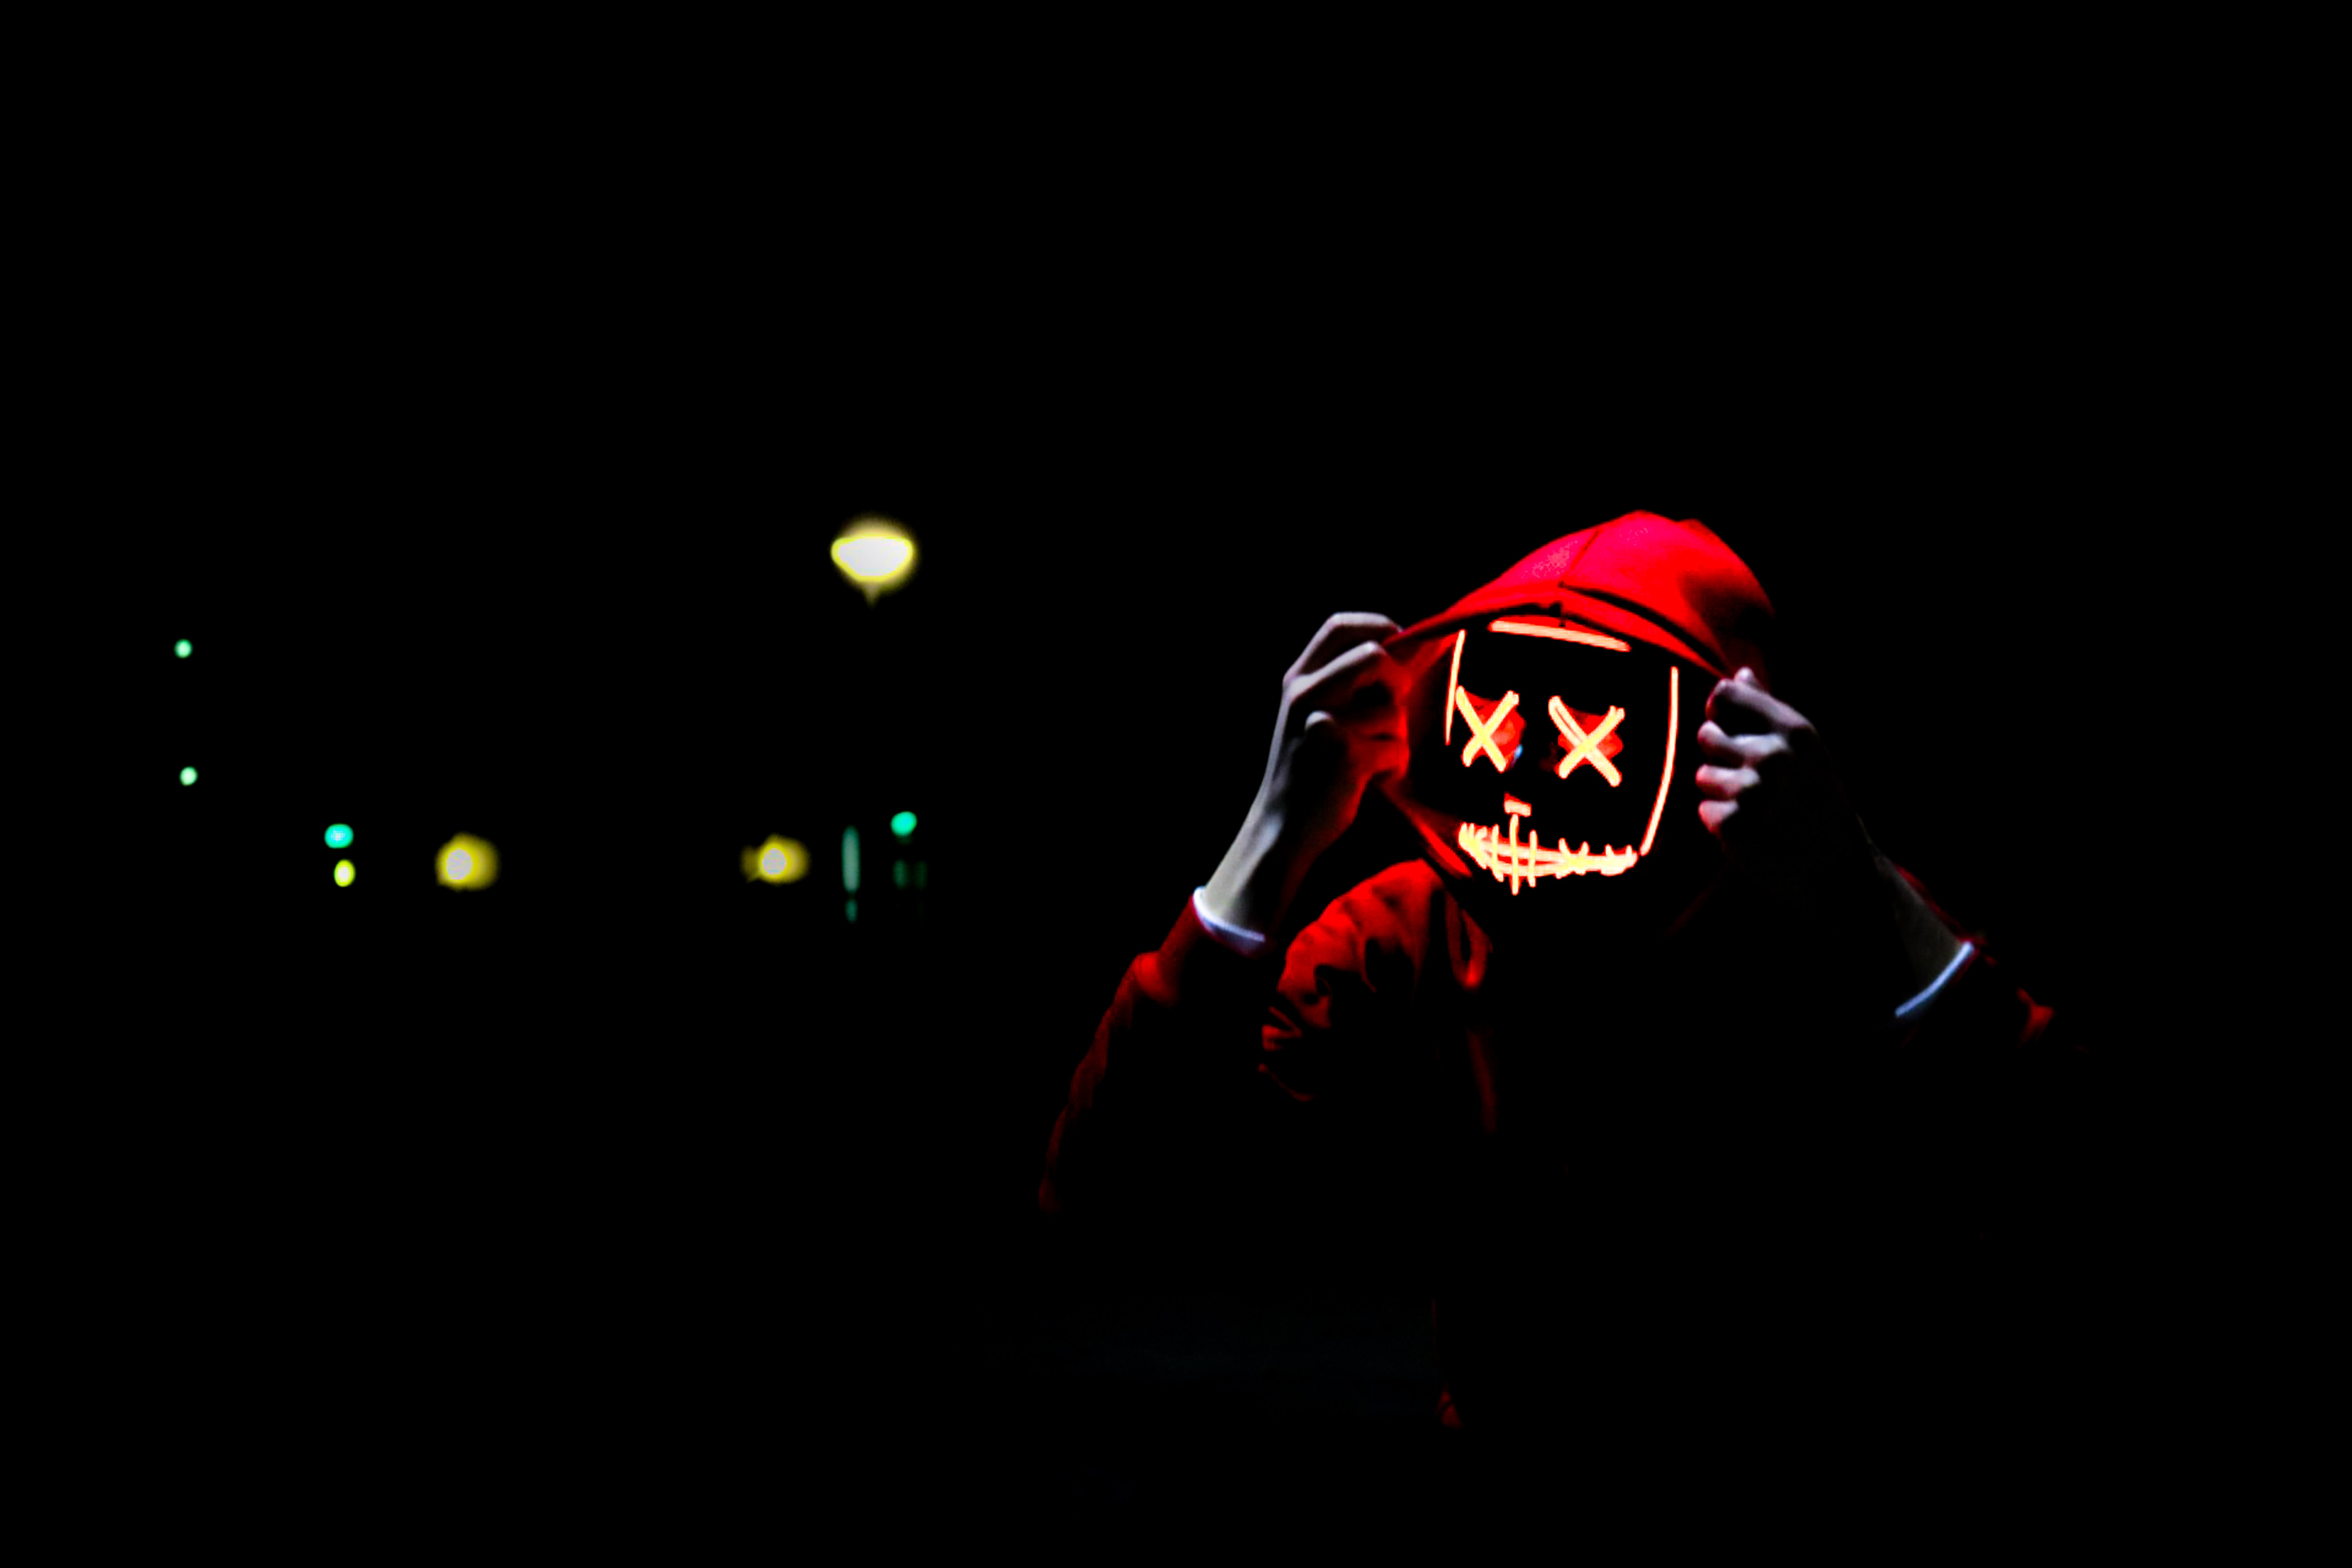 Person Wearing Hoodie And Neon Mask Photo Free Human Image On Unsplash